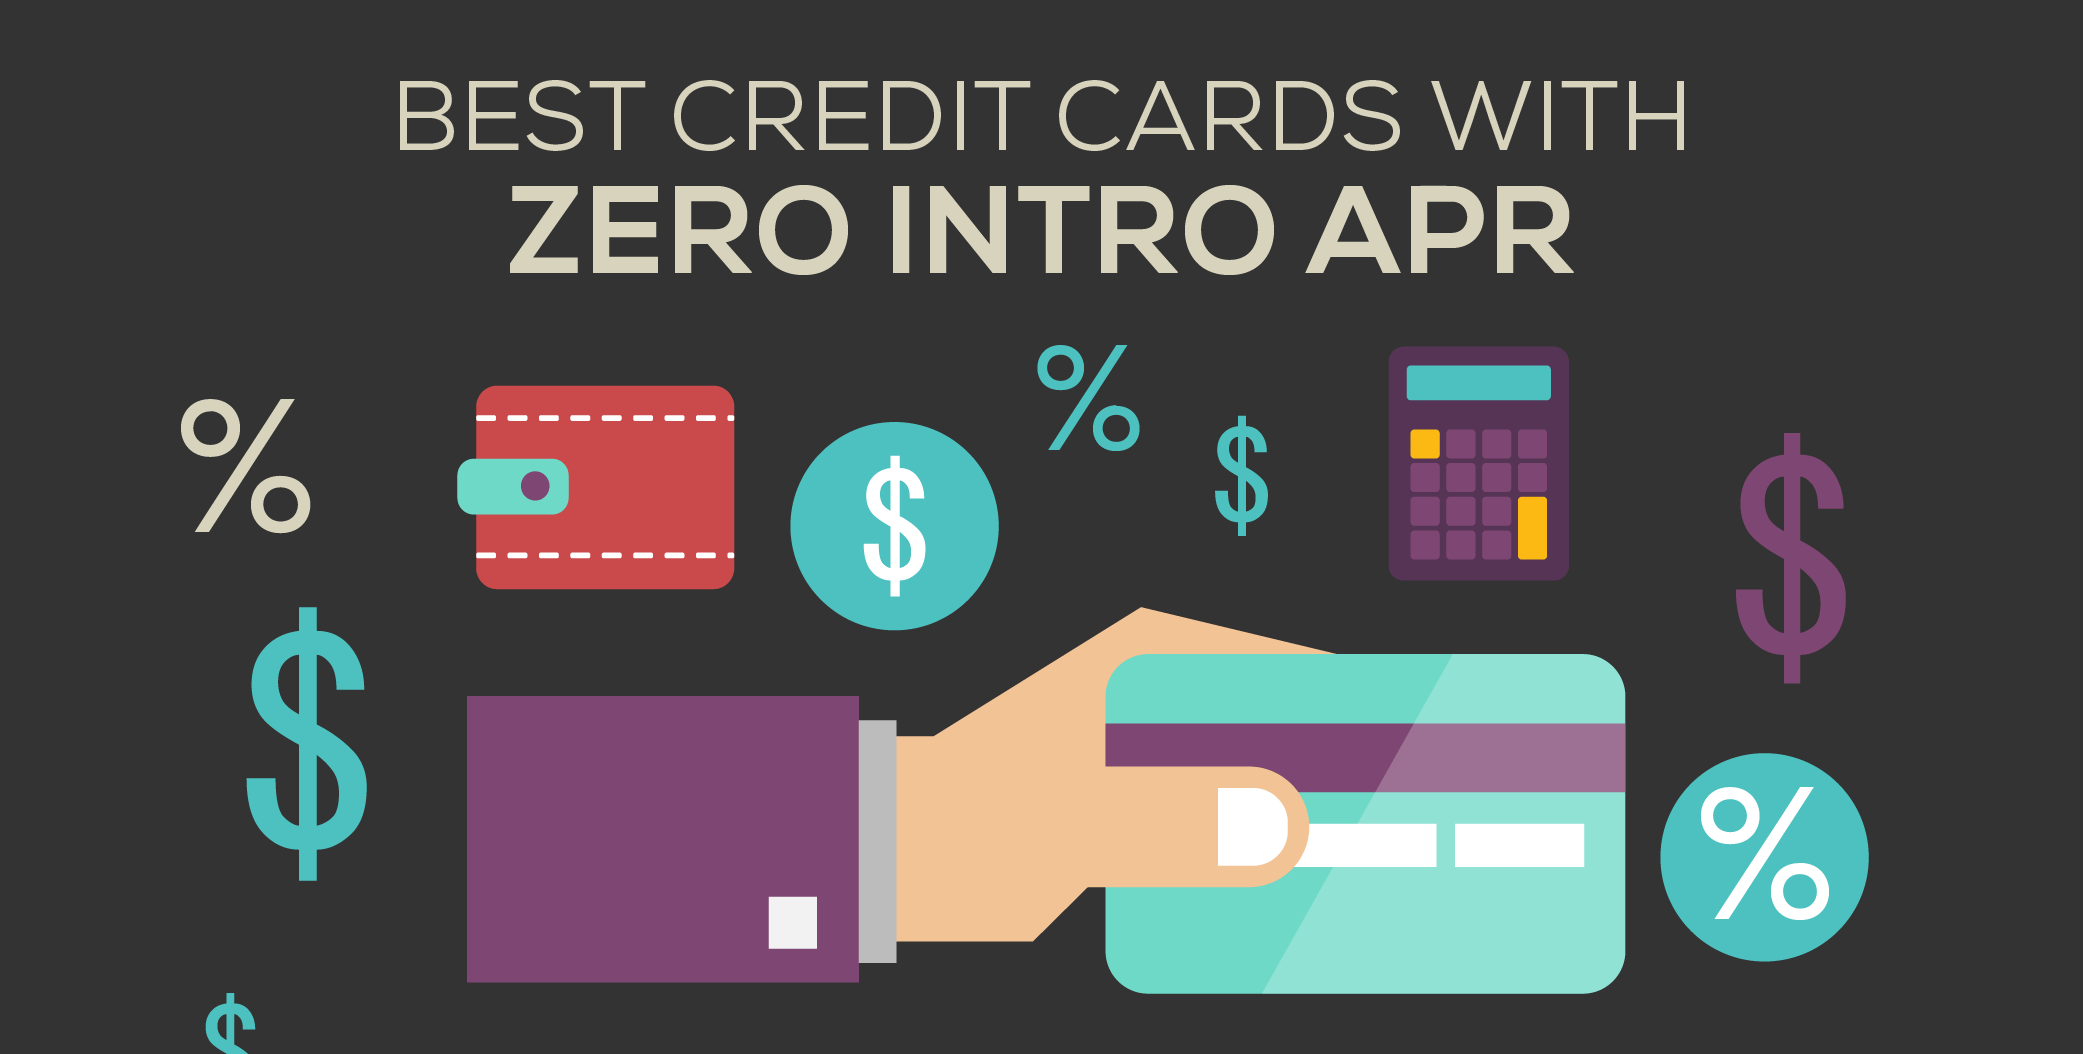 Auto Loan Rates By Credit Score >> The Best Credit Cards With 0% APR - CreditLoan.com®